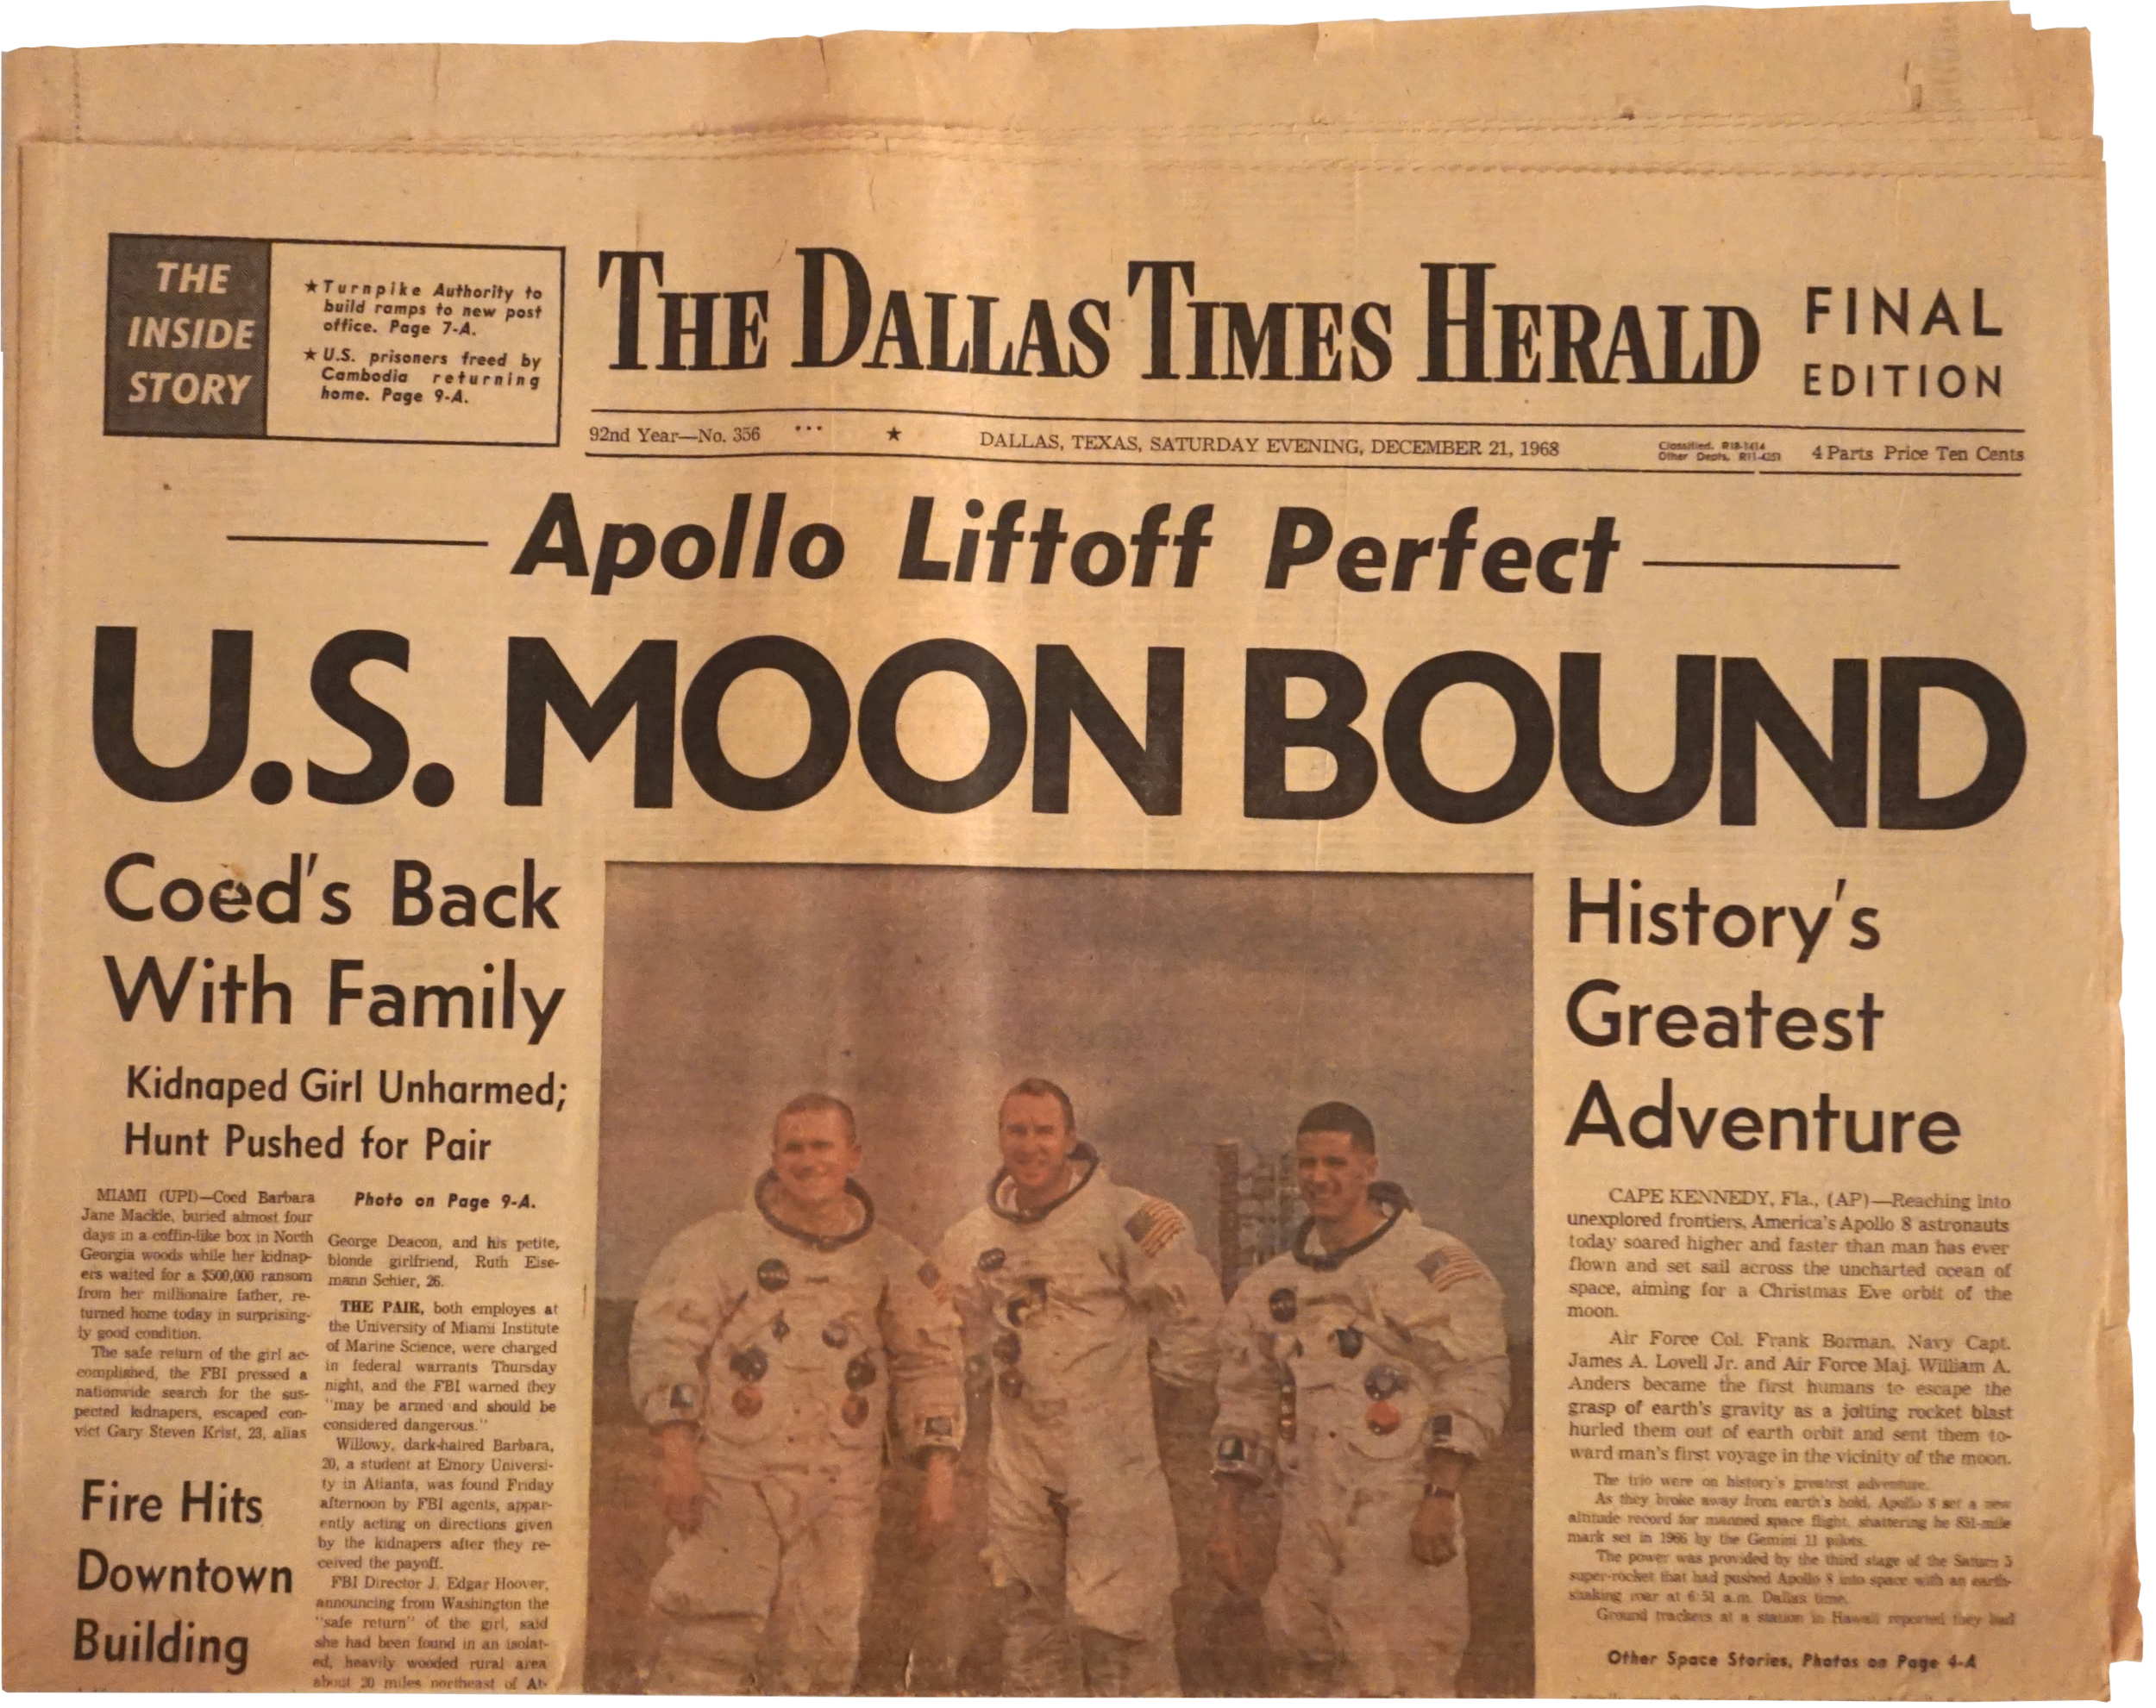 ERM-1968-NEWSPAPER-DALLAS_TIMES_HERALD-122168.png